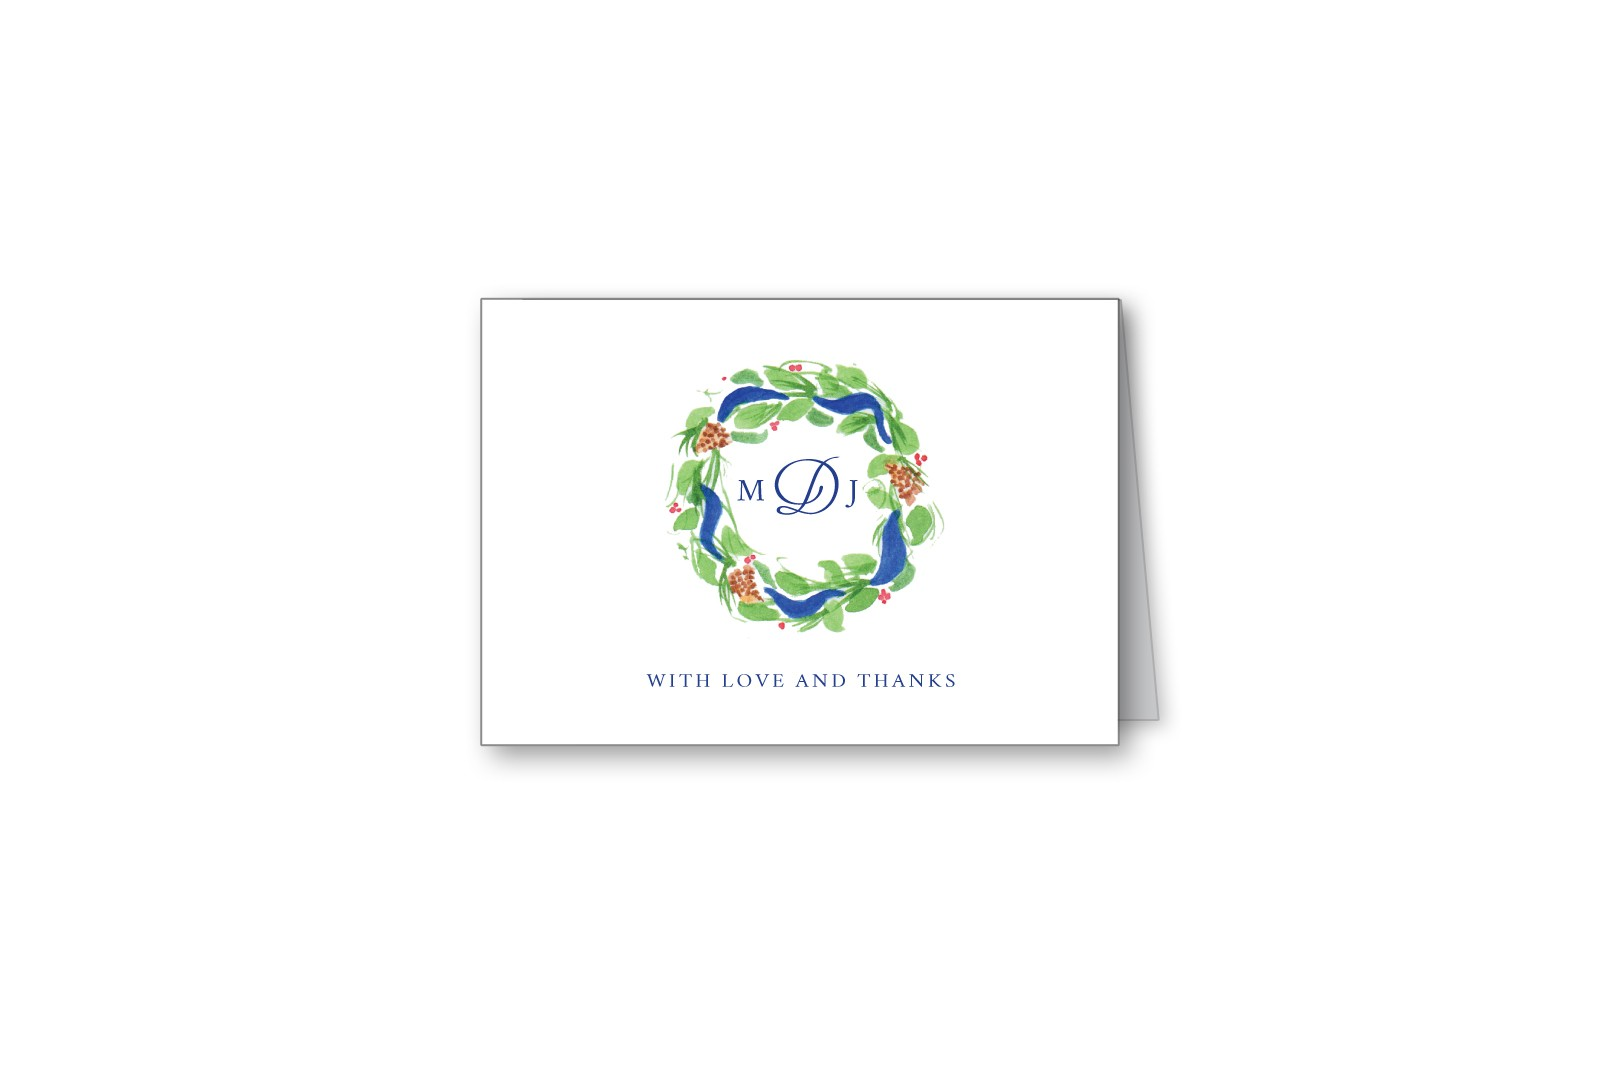 Brushed Pine Wedding Thank You Cards from MarryMoment – Monogram Wedding Thank You Cards